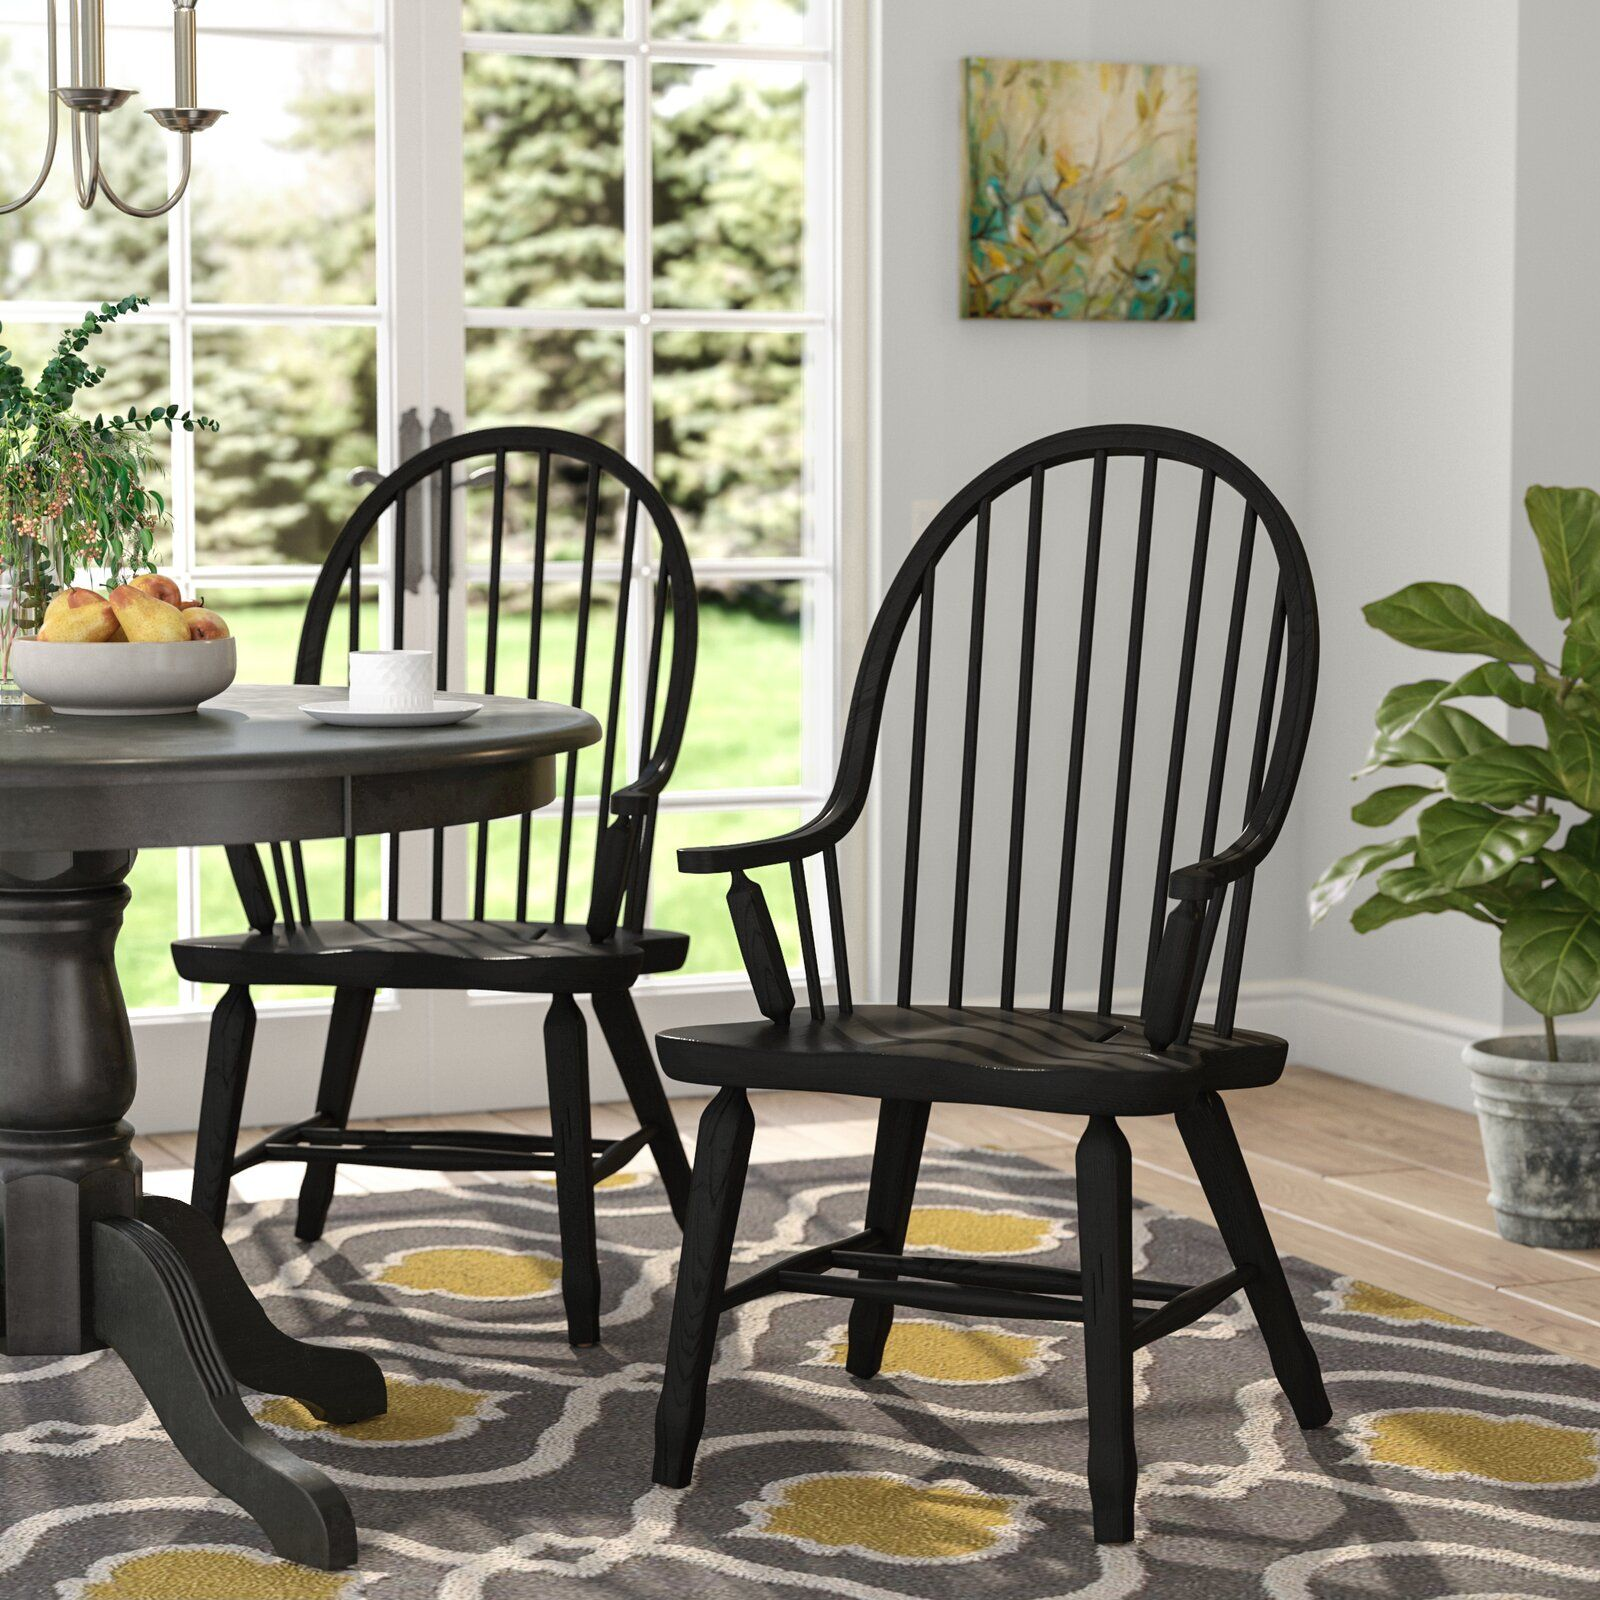 August Grove Koffler Windsor Back Arm Chair Dining Chairs Side Chairs Farmhouse Dining Room